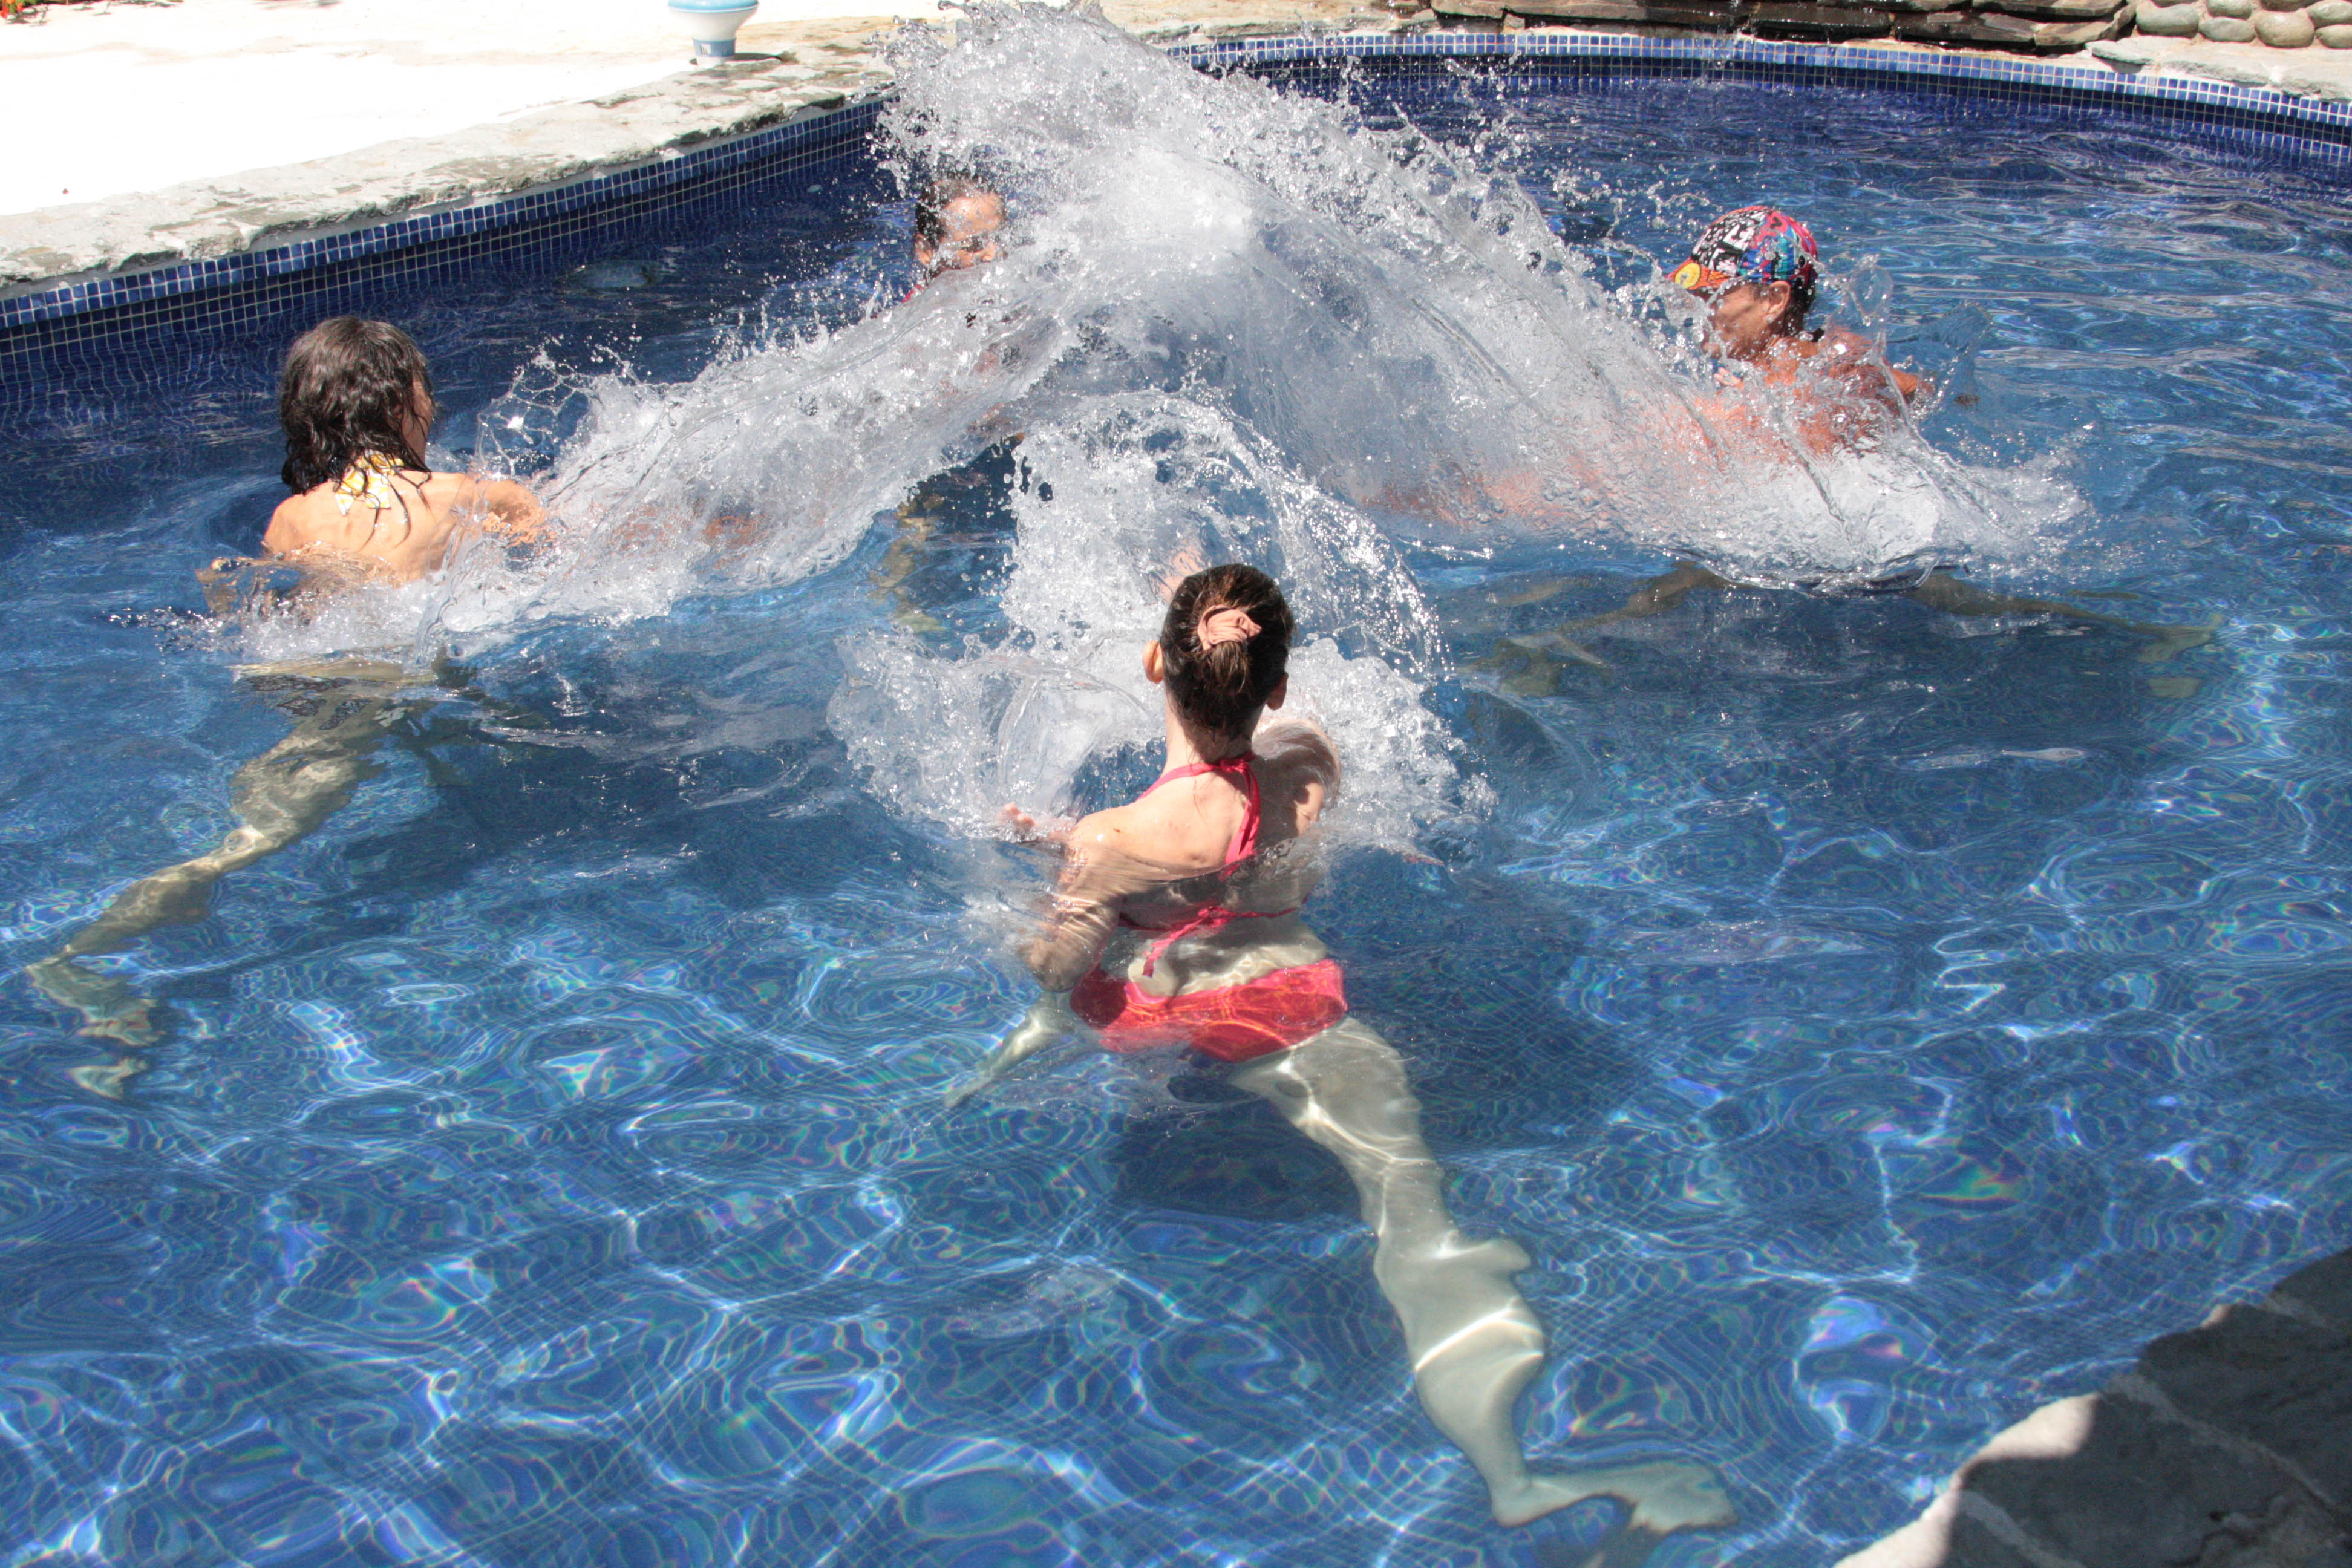 [Image:People Spash Exercise in Pool]